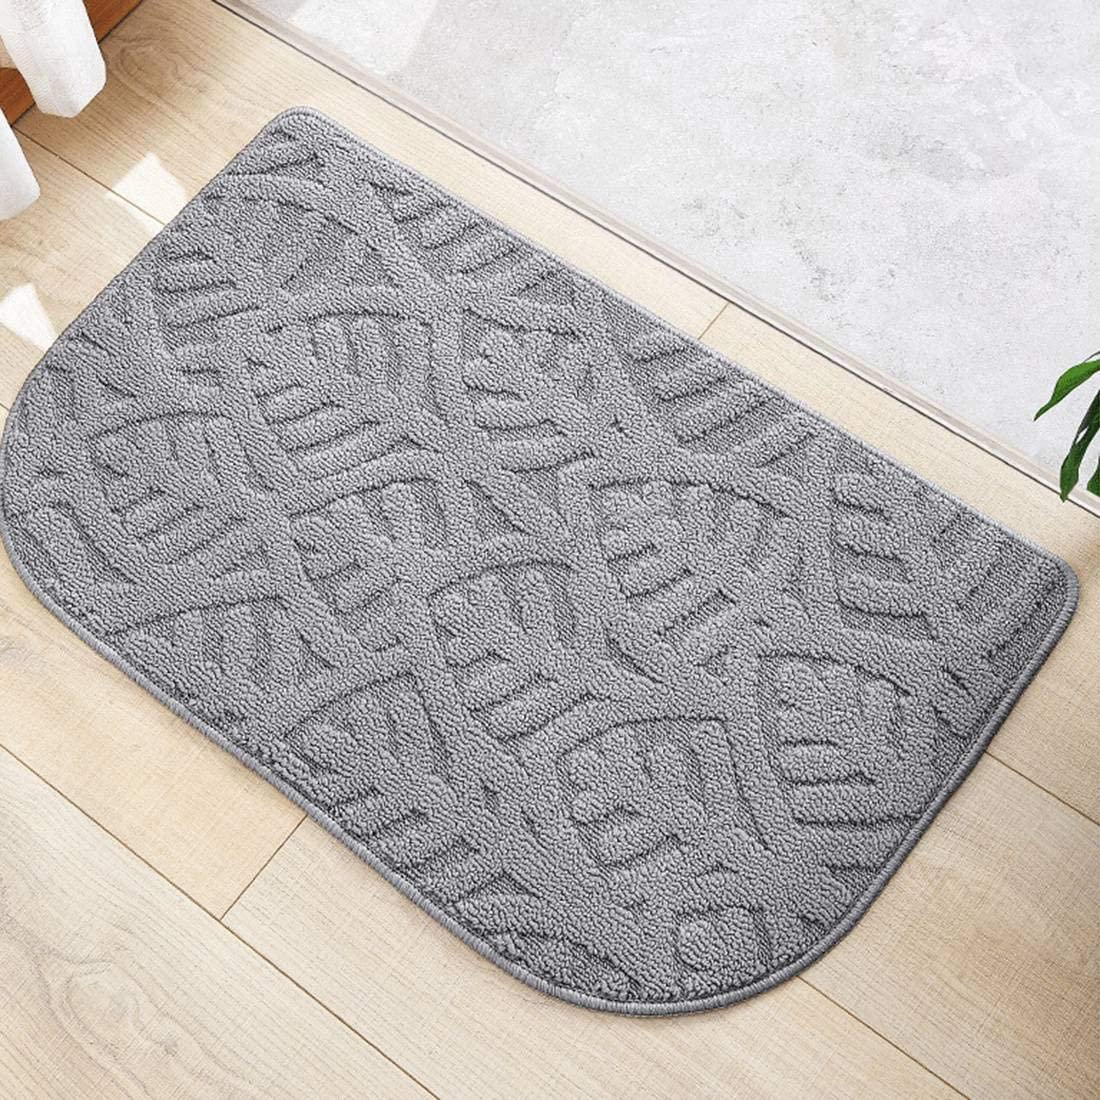 HCG Non Slip Doormat 28x16.9inch Front Back Door Mat Absorbent Rubber Backing Pad for Home Entrance Kitchen Bathroom Light Grey